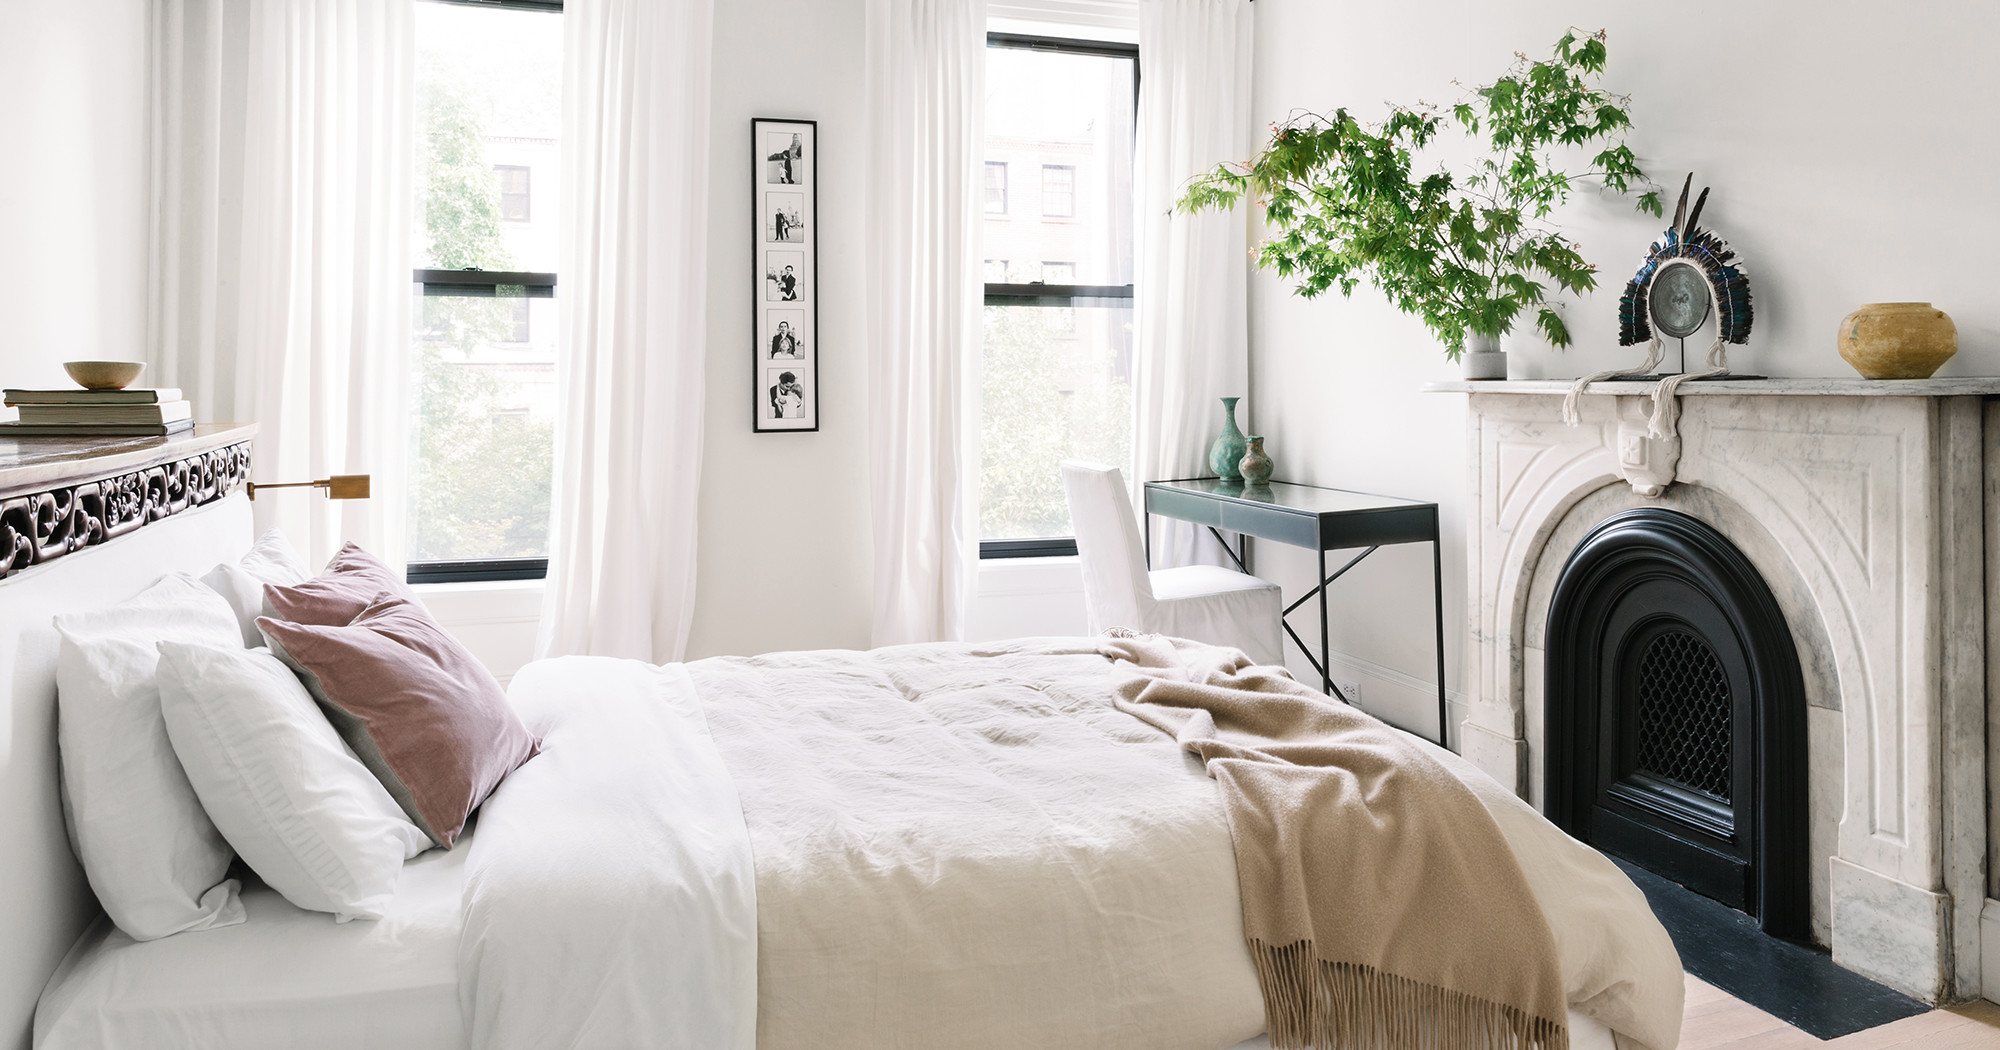 Small Bedroom Design Ideas For Every Style - See It Now - Lonny